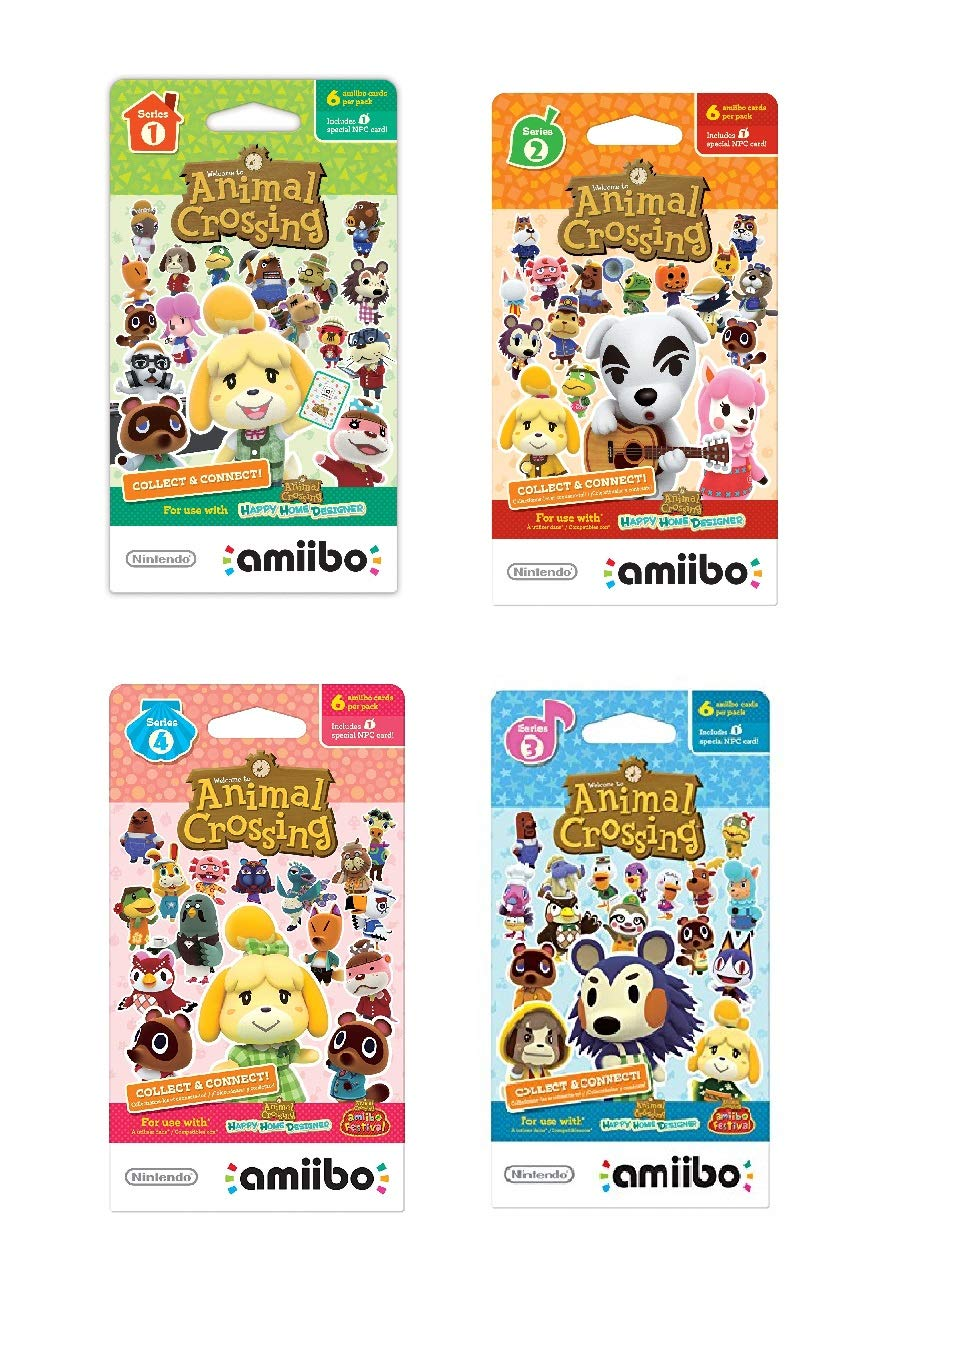 Nintendo Animal Crossing amiibo Cards Series 1, 2, 3, 4 for Nintendo Wii U and 3DS, 1-Pack (6 Cards/Pack) (Bundle) Includes 24 Cards Total by Nintendo